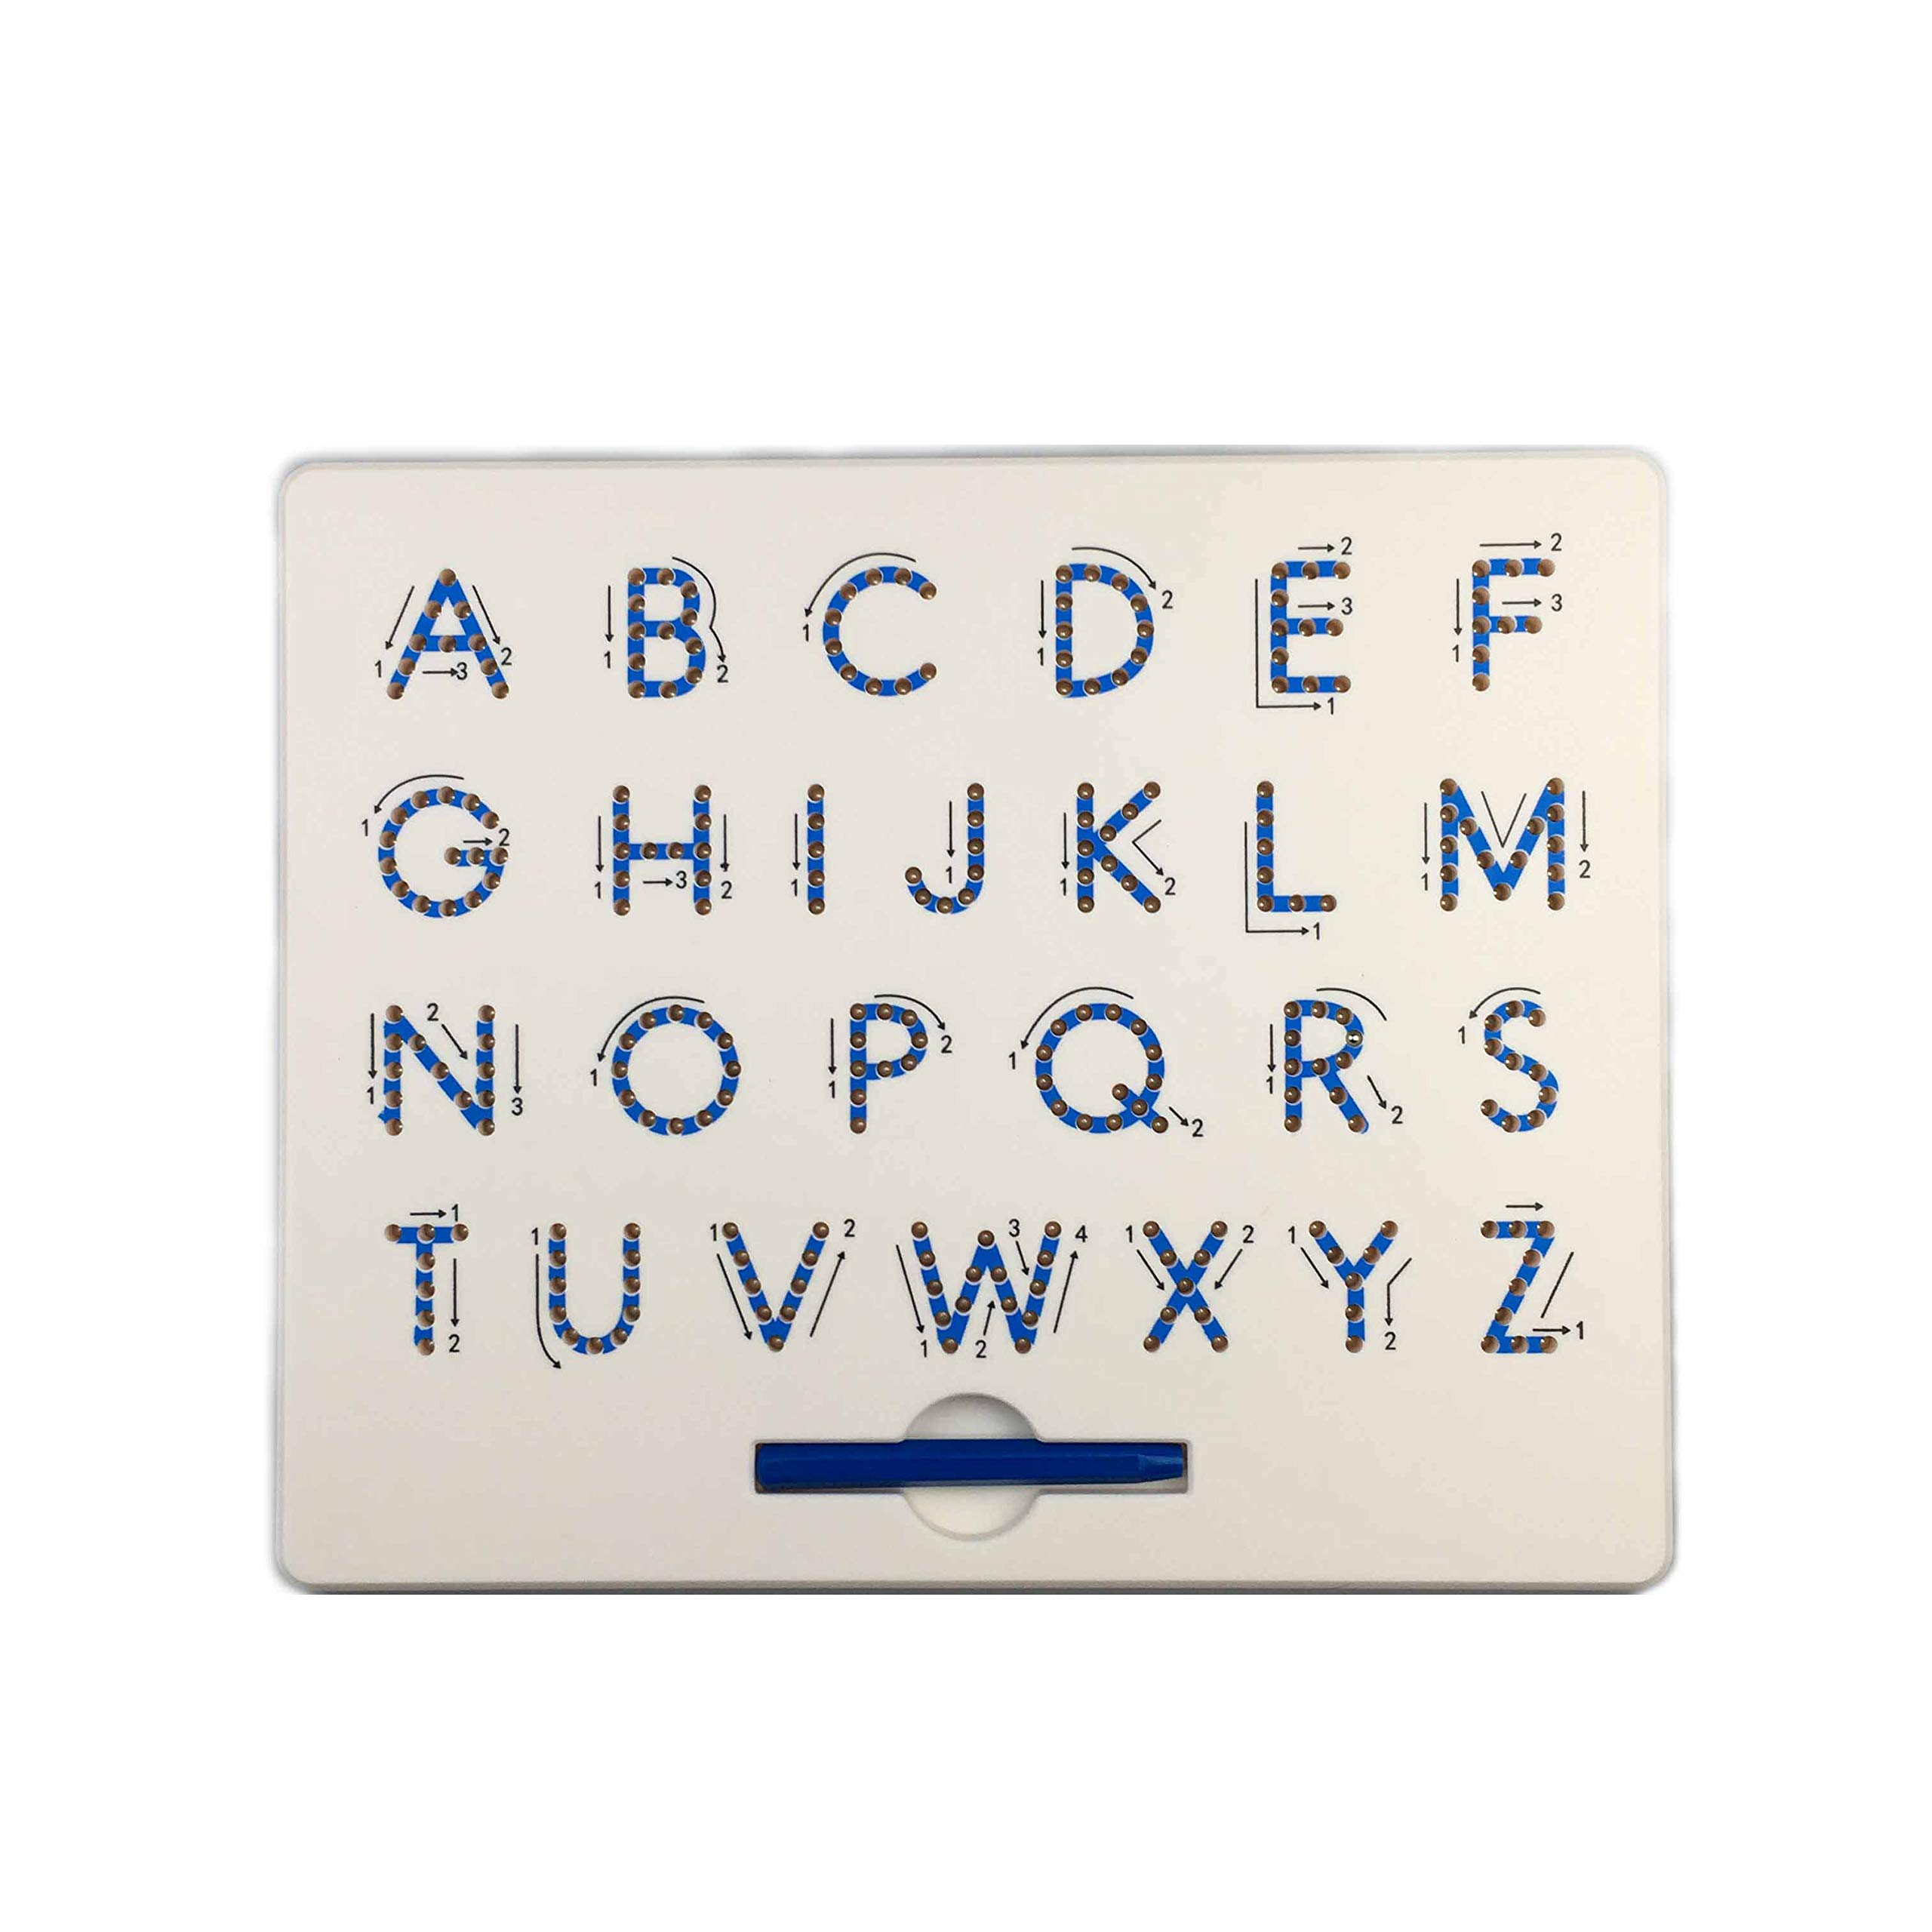 JohnCalbe Magnetic Tablet Drawing Board Pad Toy Bead Magnet Stylus Pen 26 Alphabet Numbers Writing Memo Board Learning Educational Kid Toy